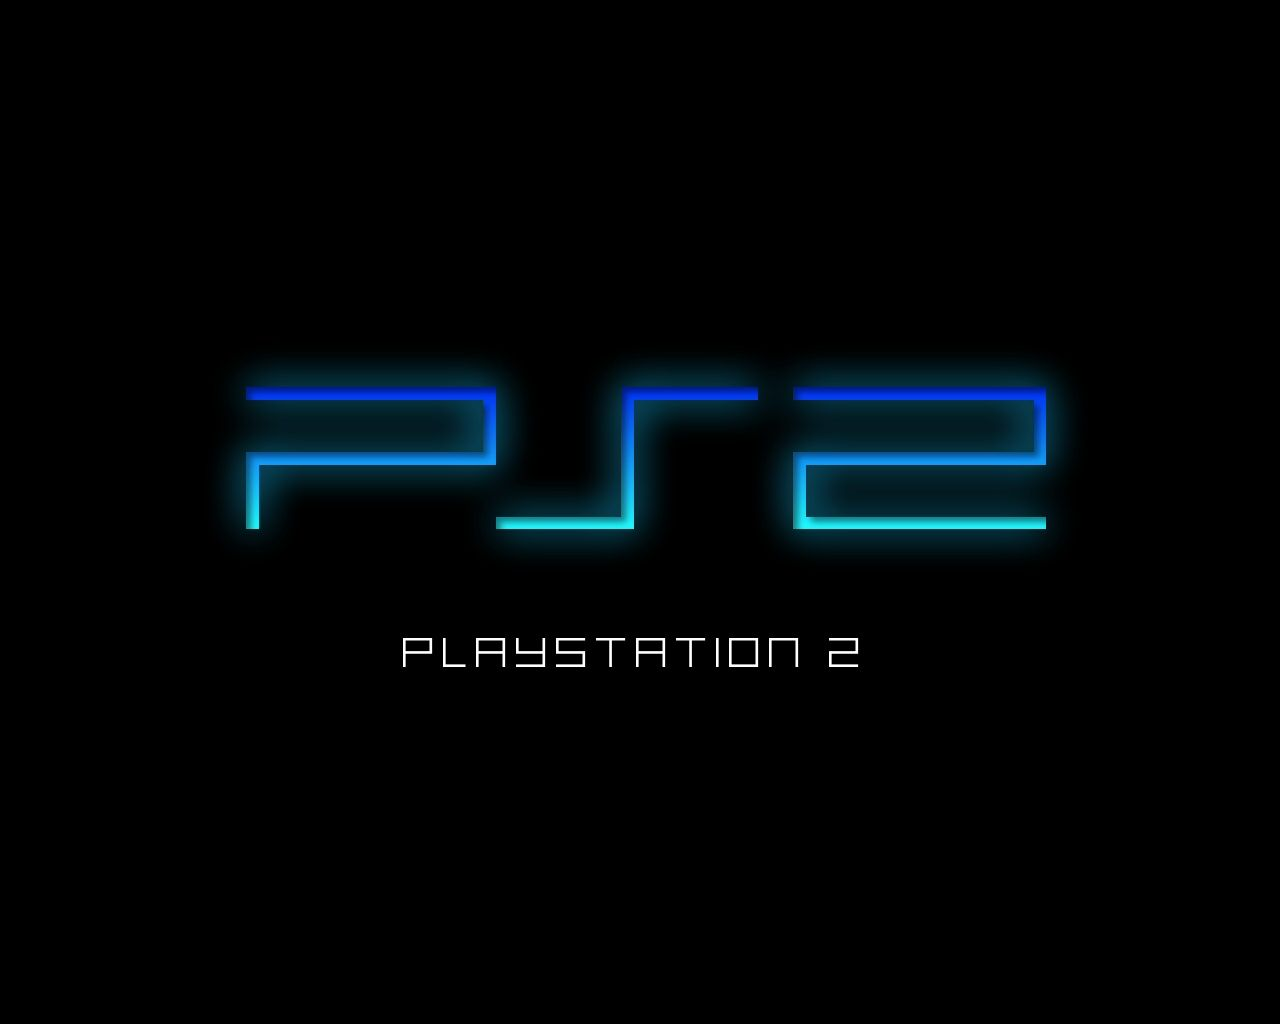 PS2 Wallpapers   Top PS2 Backgrounds   WallpaperAccess 1280x1024